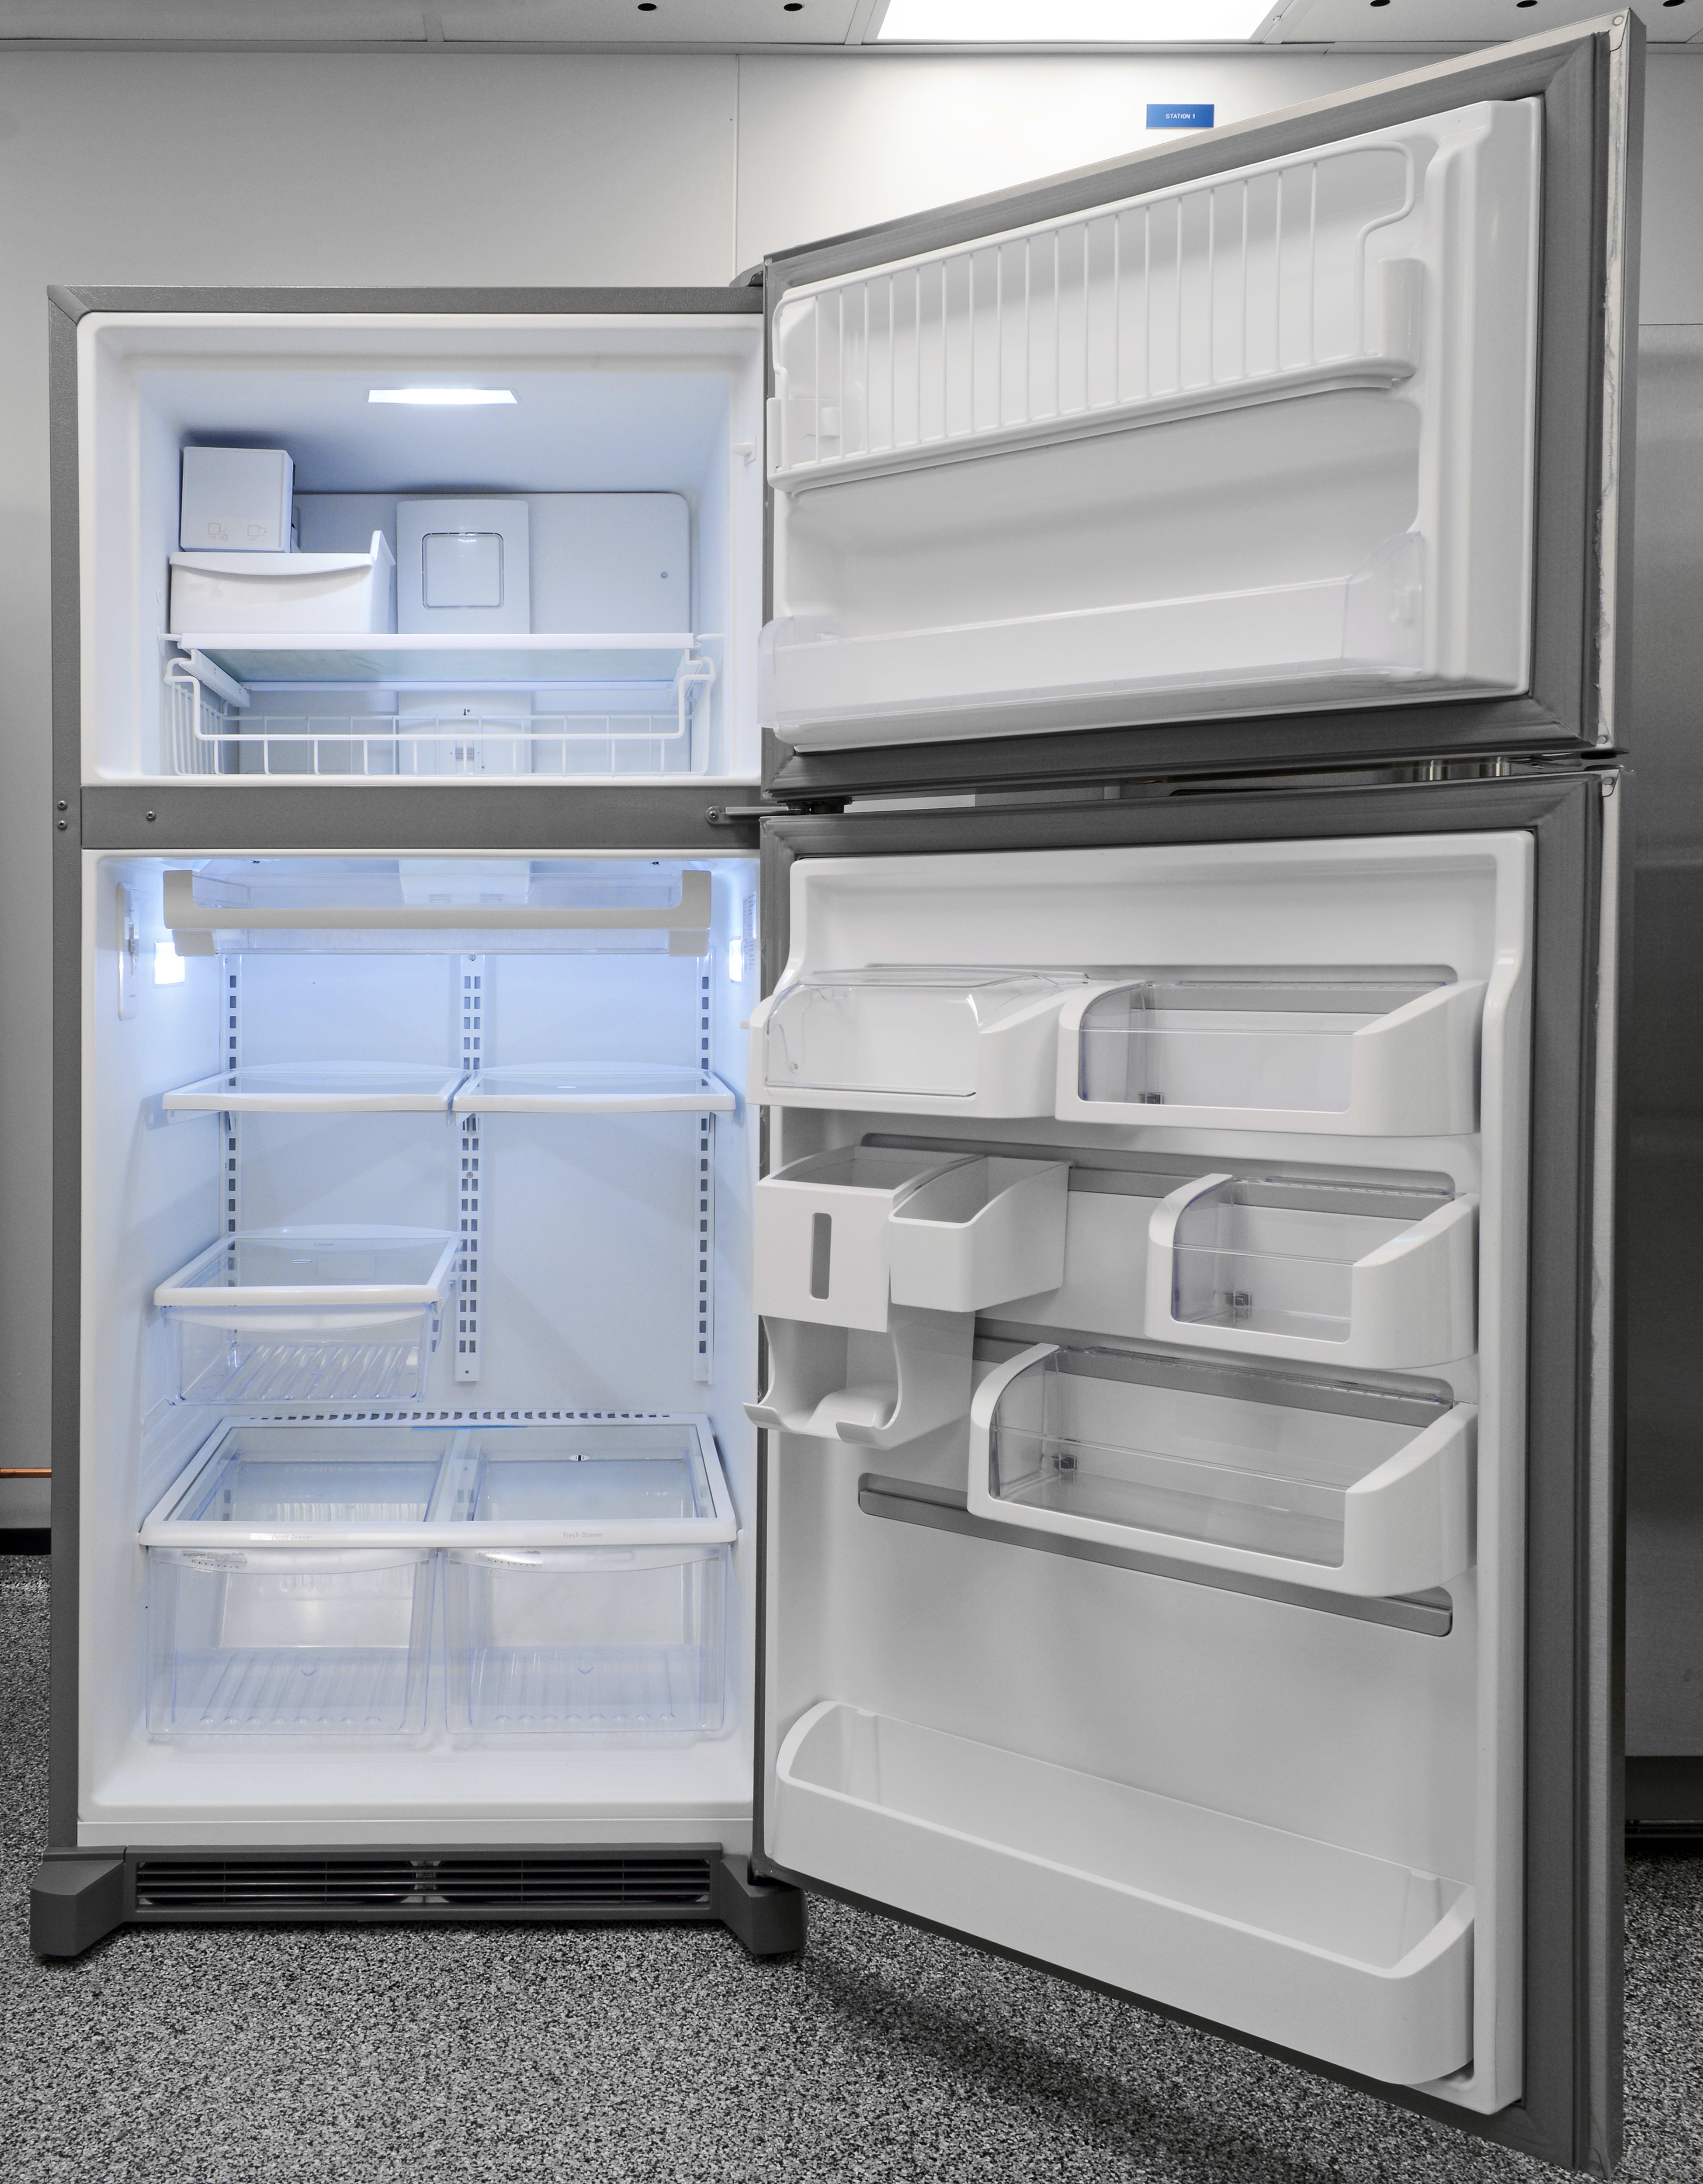 Plenty of space and customizable storage make the Frigidaire Gallery FGHI2164QF a great fridge for many different consumers.